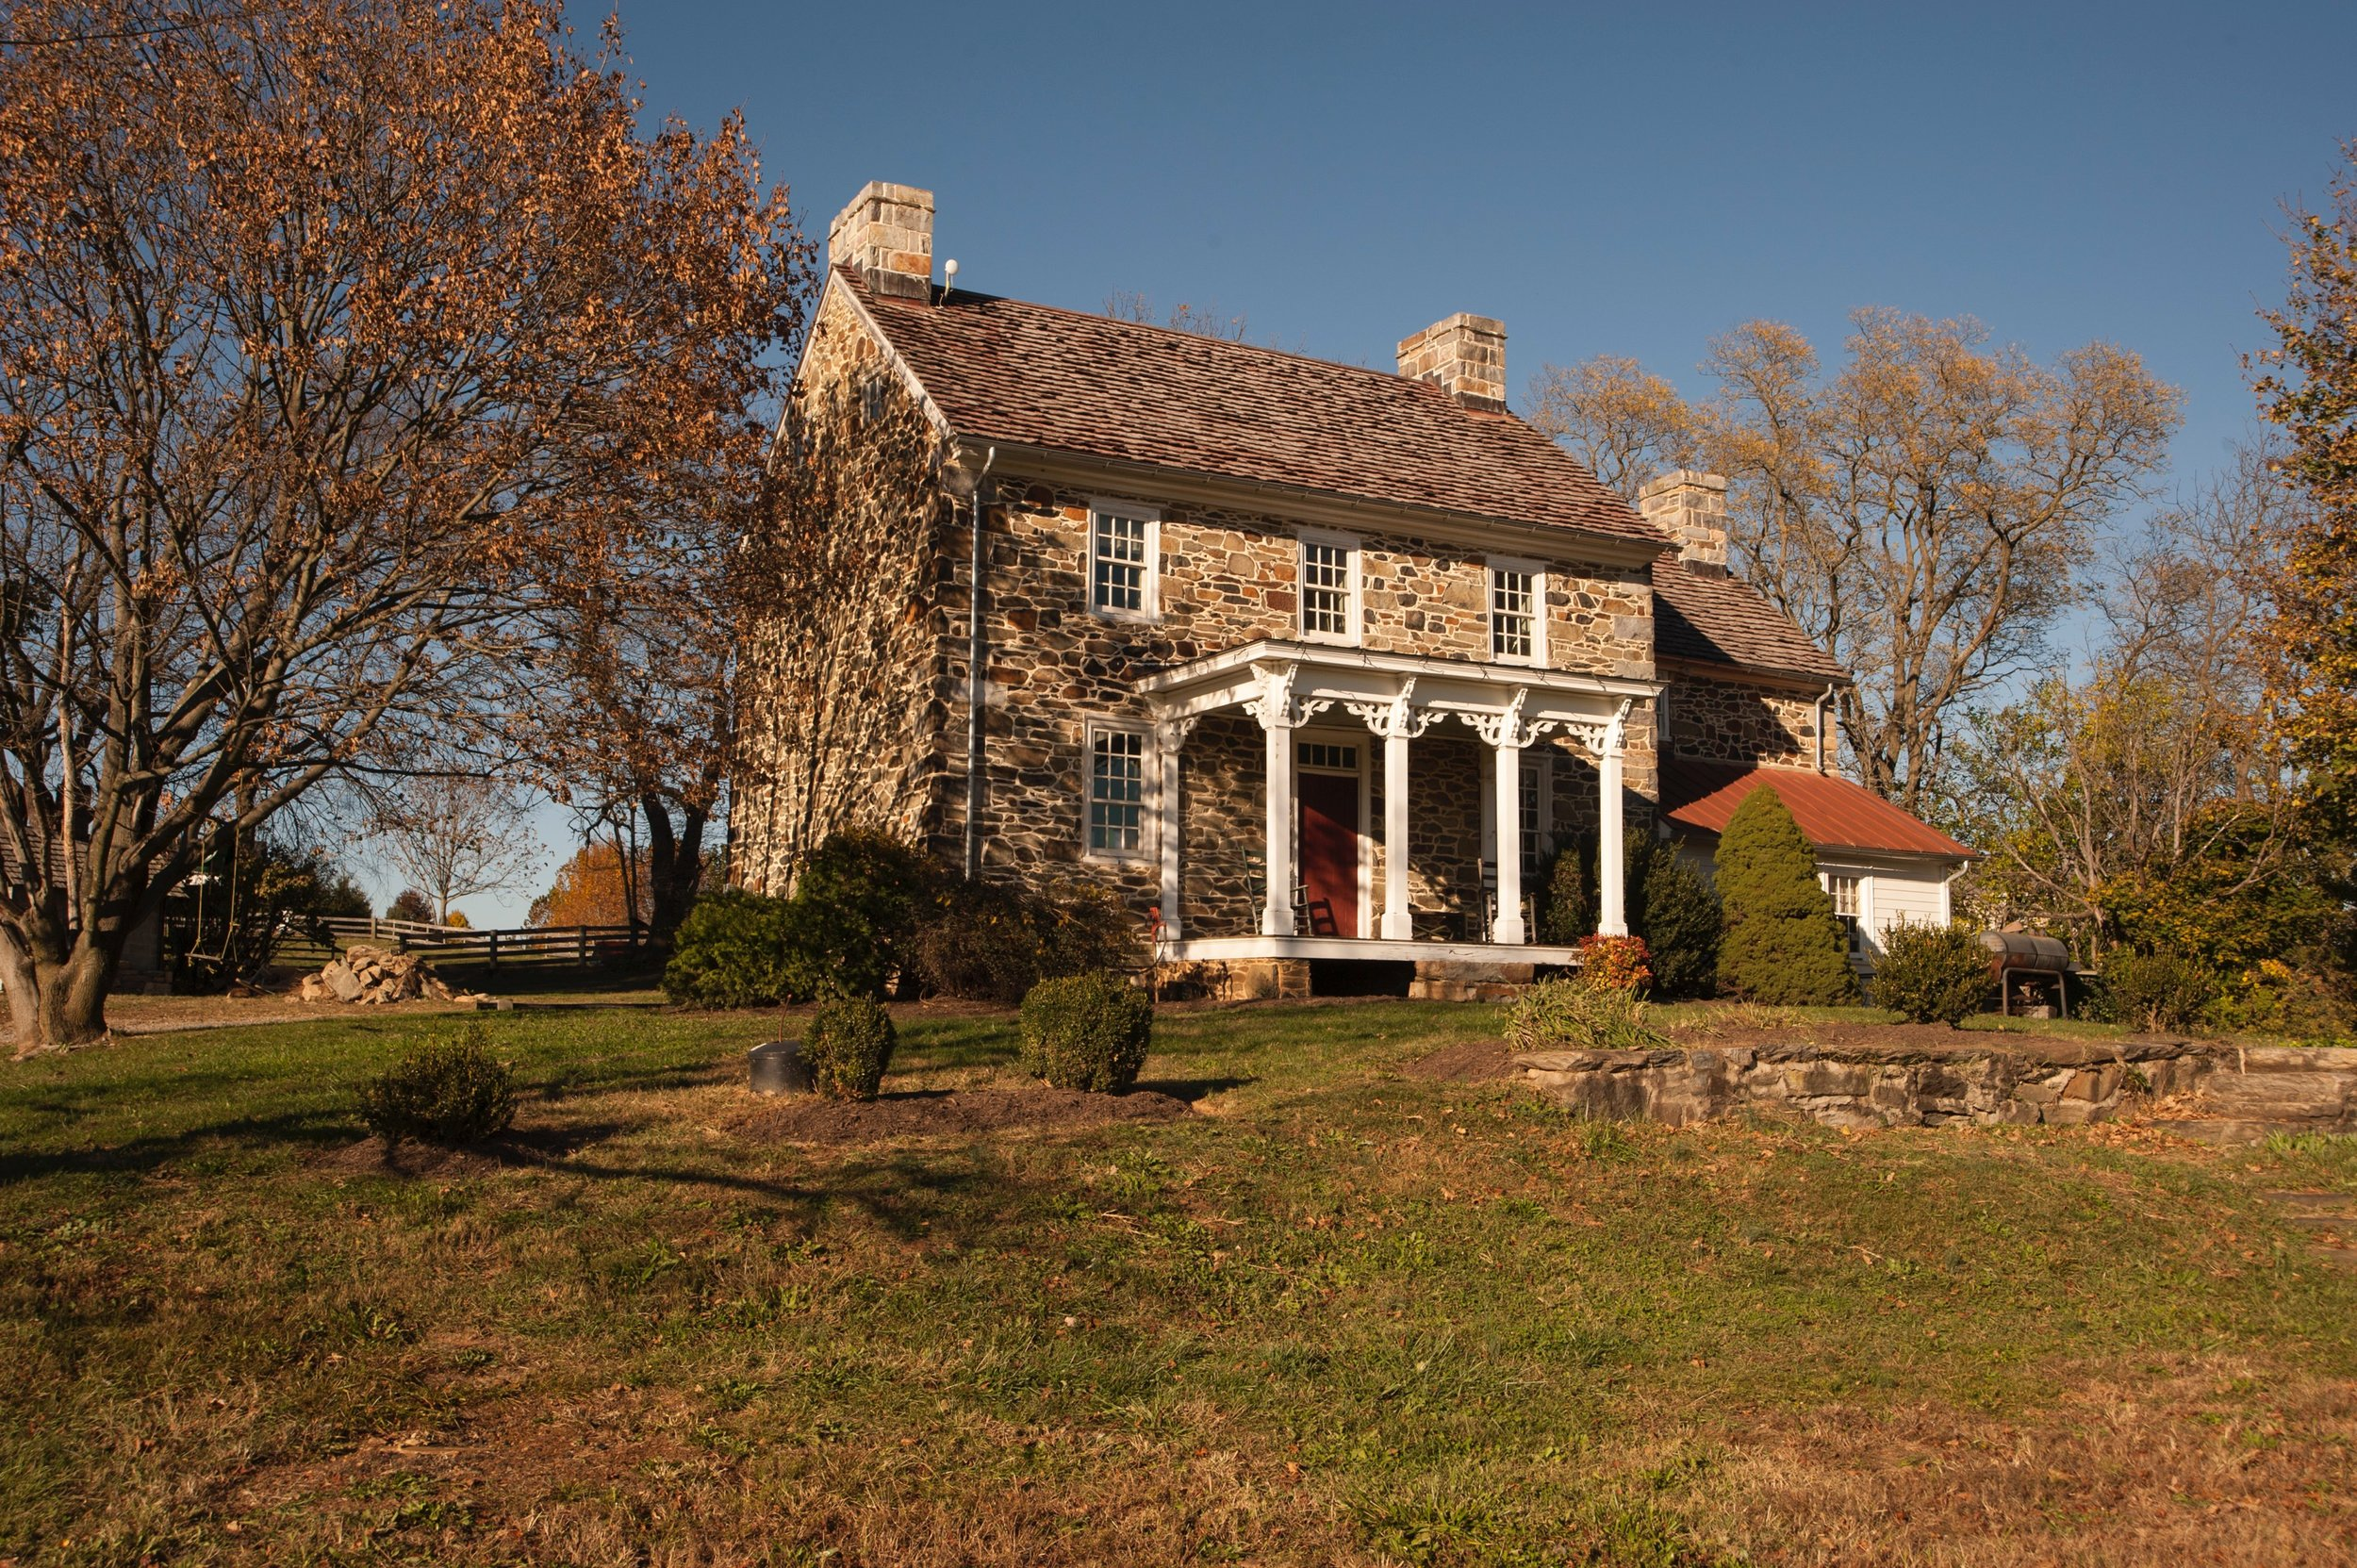 The main stone house from the drive.